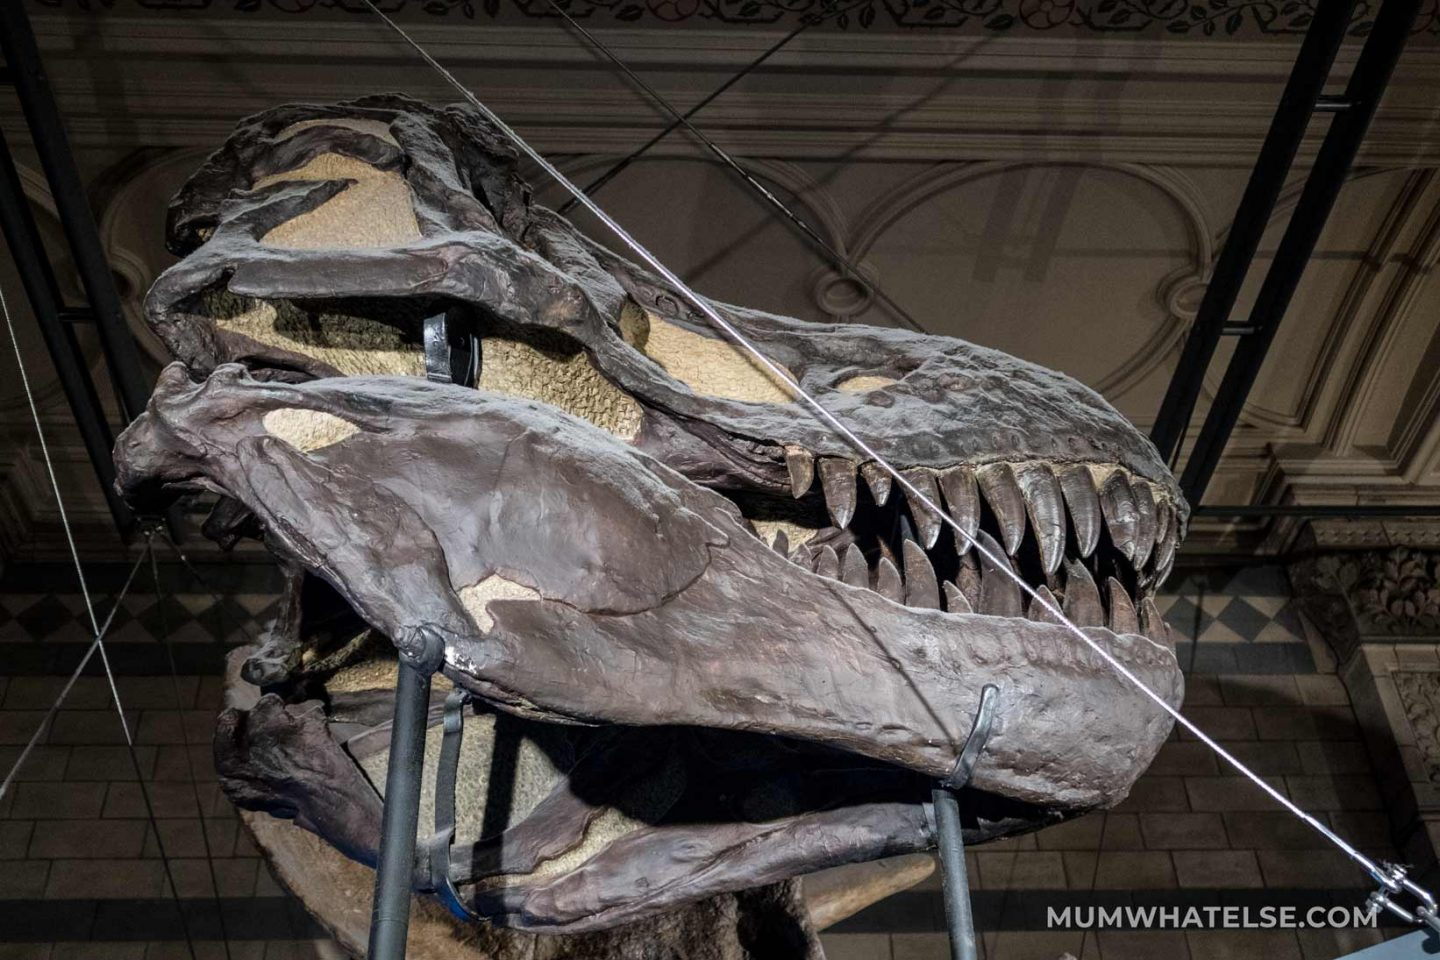 The T-Rex giant jaw skeleton